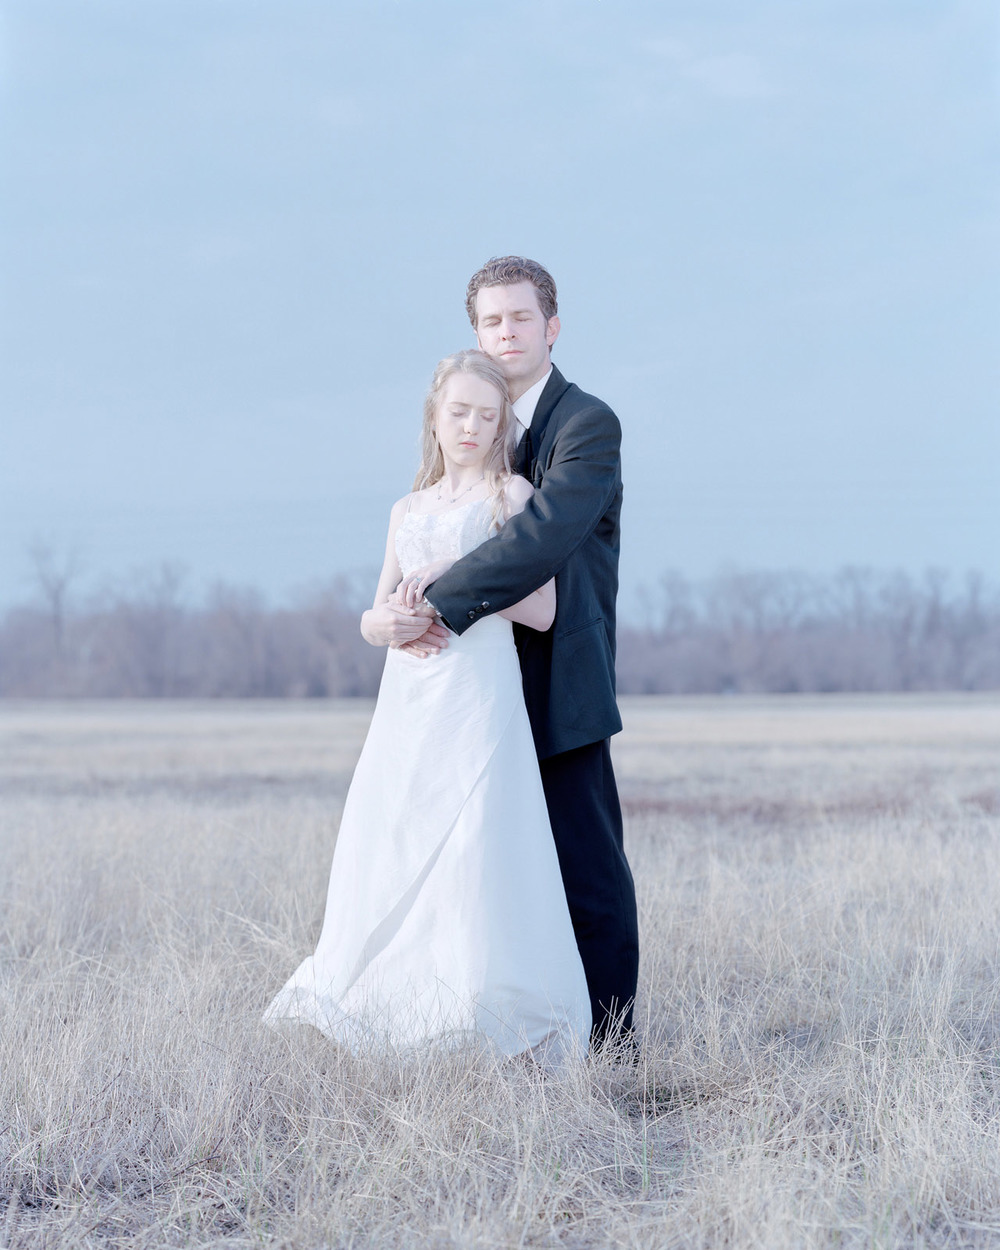 Jamie & David Clampitt, Shreveport, Louisiana